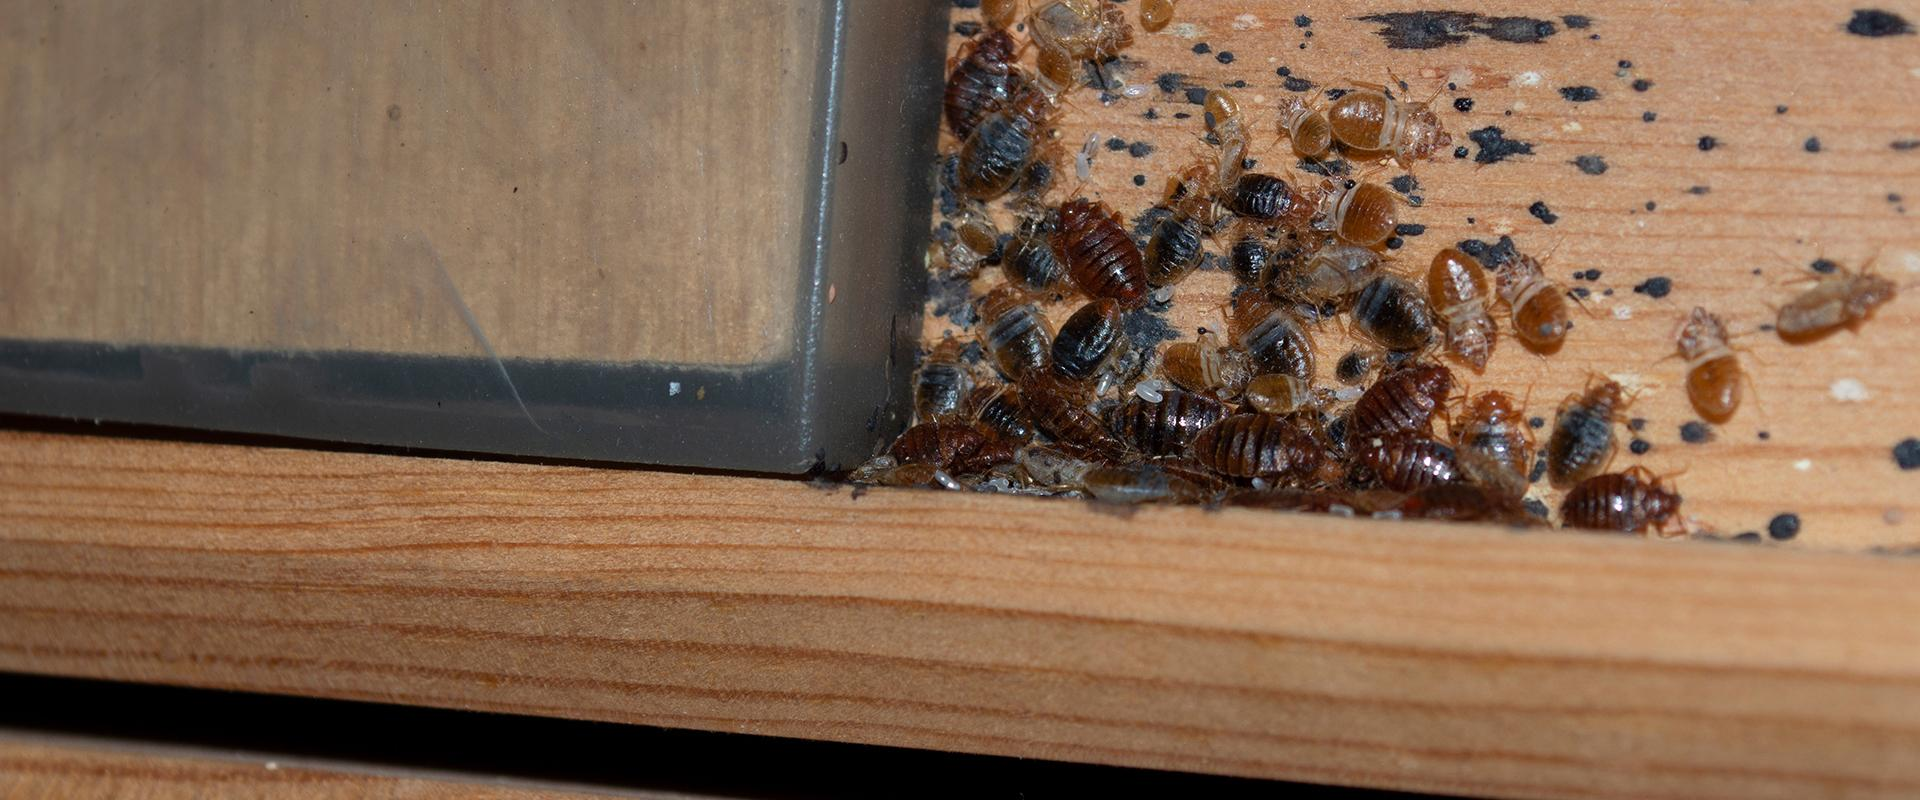 bedbugs on a bed baseboard in idaho falls